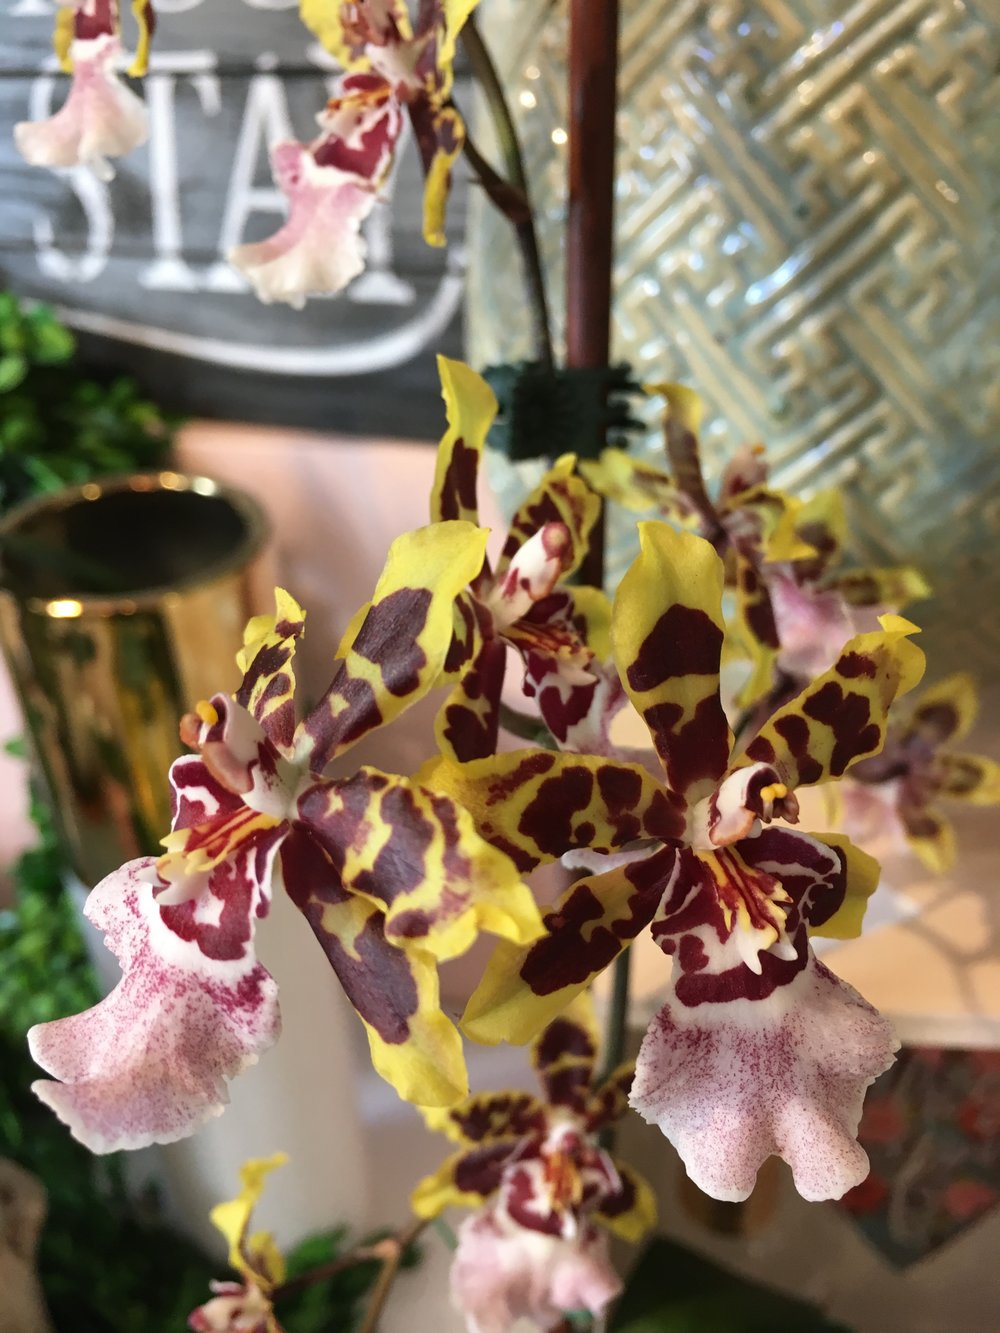 Fragrant Orchids - We bring in exotic varities when we can!